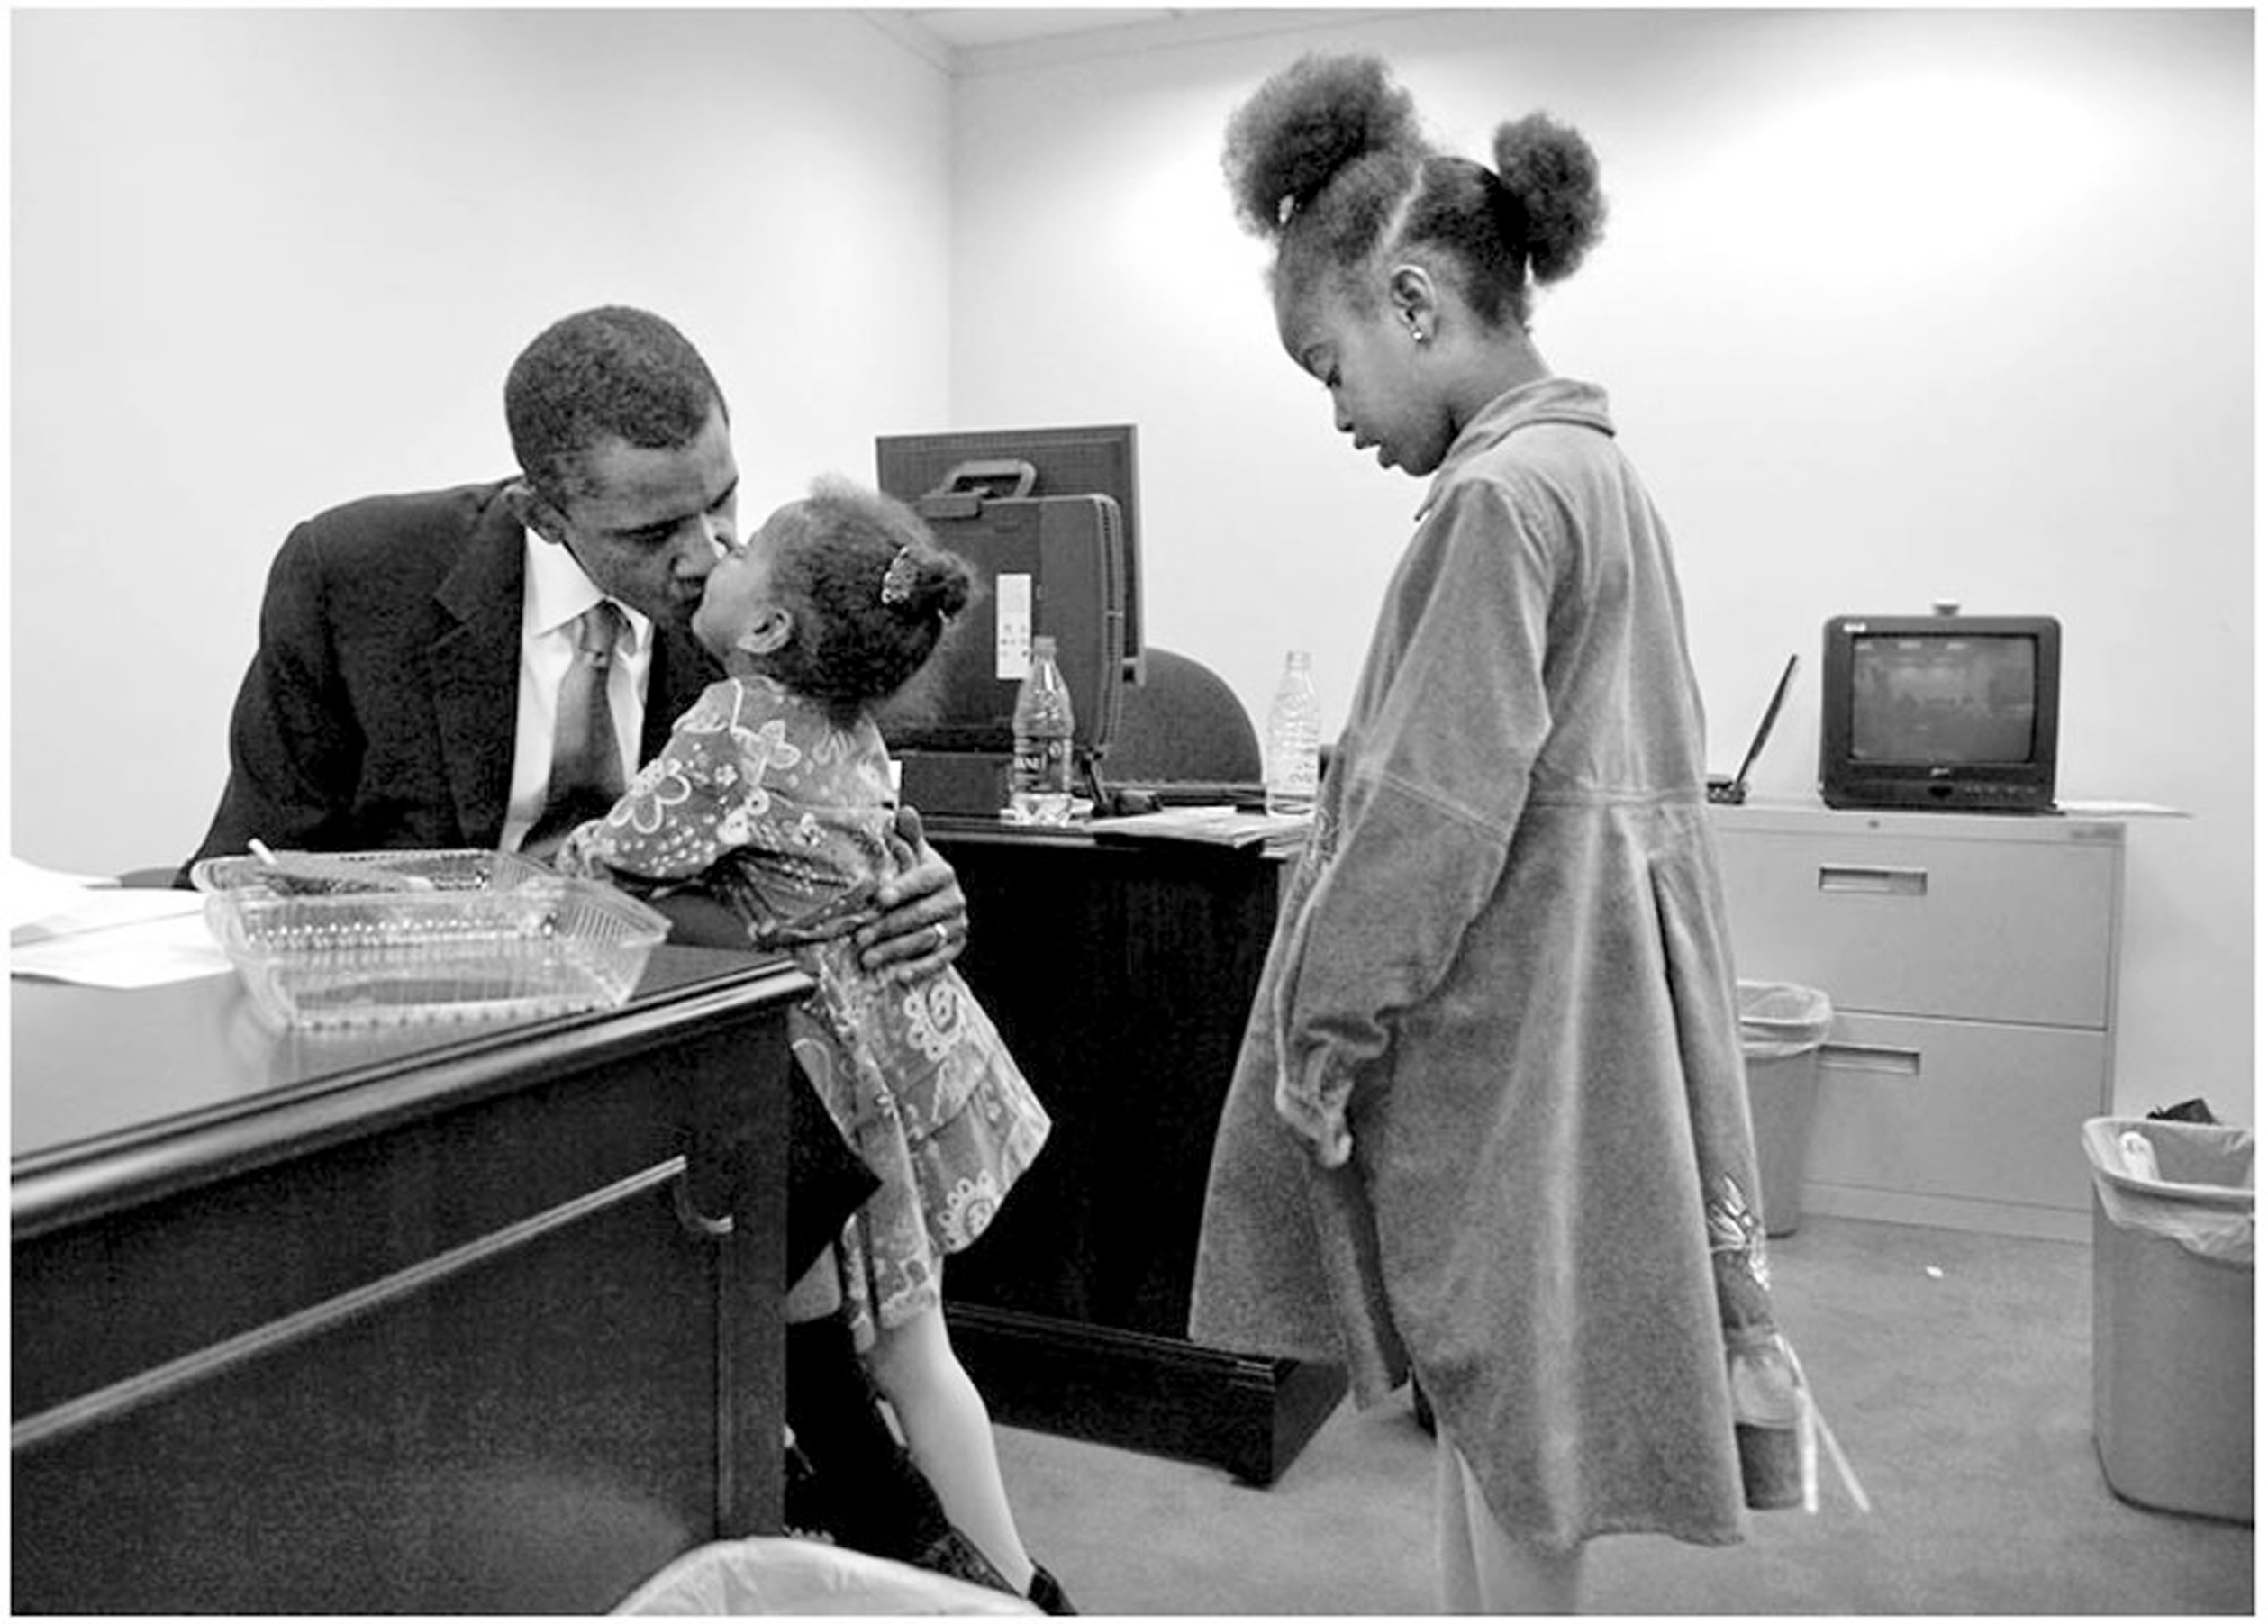 how the presidency made me a better father the huffington post 2015 06 21 1434913876 1746319 potusessayimage3 jpg